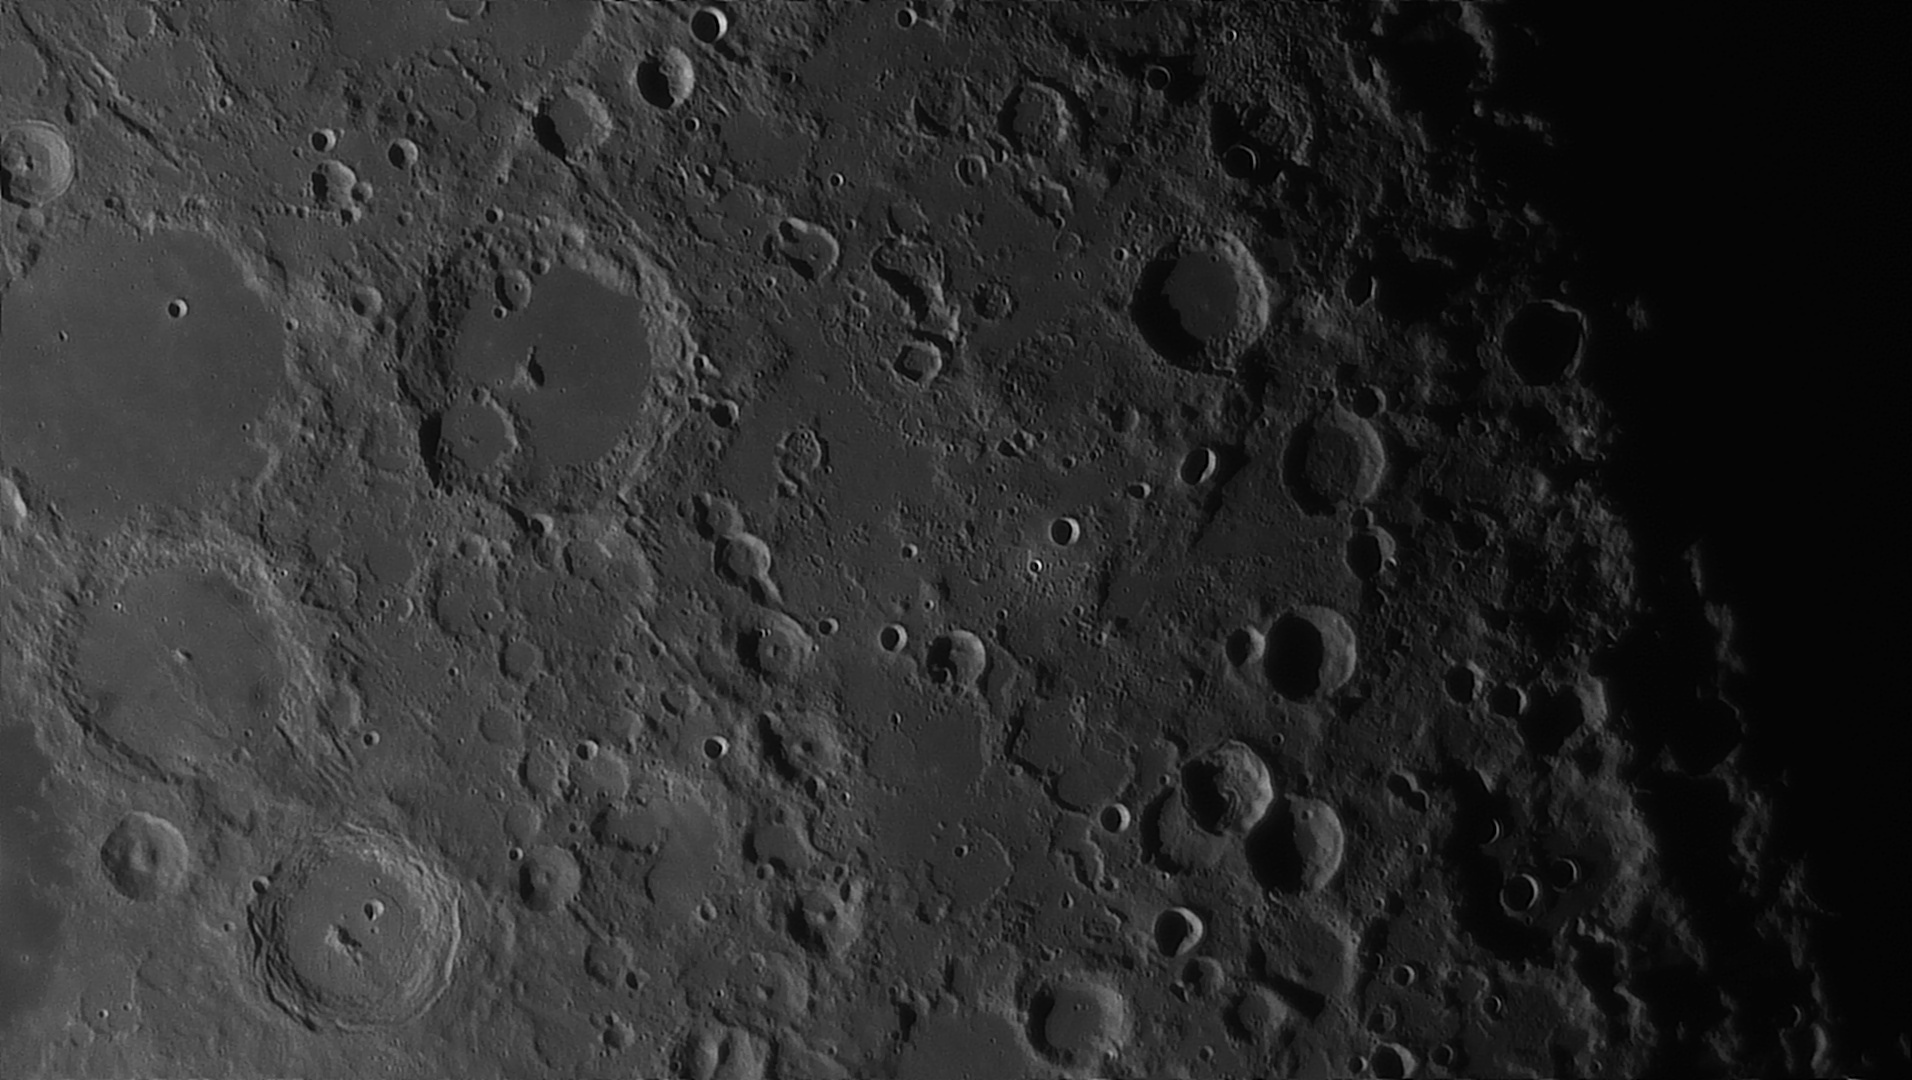 5e5195b45d801_Moon_054728_160120_ZWOASI290MM_Rouge_23A_AS_P35_lapl6_ap889_AI_Deconvolution_14--.jpg.e12621444555a4f28042f6f05a16d81b.jpg